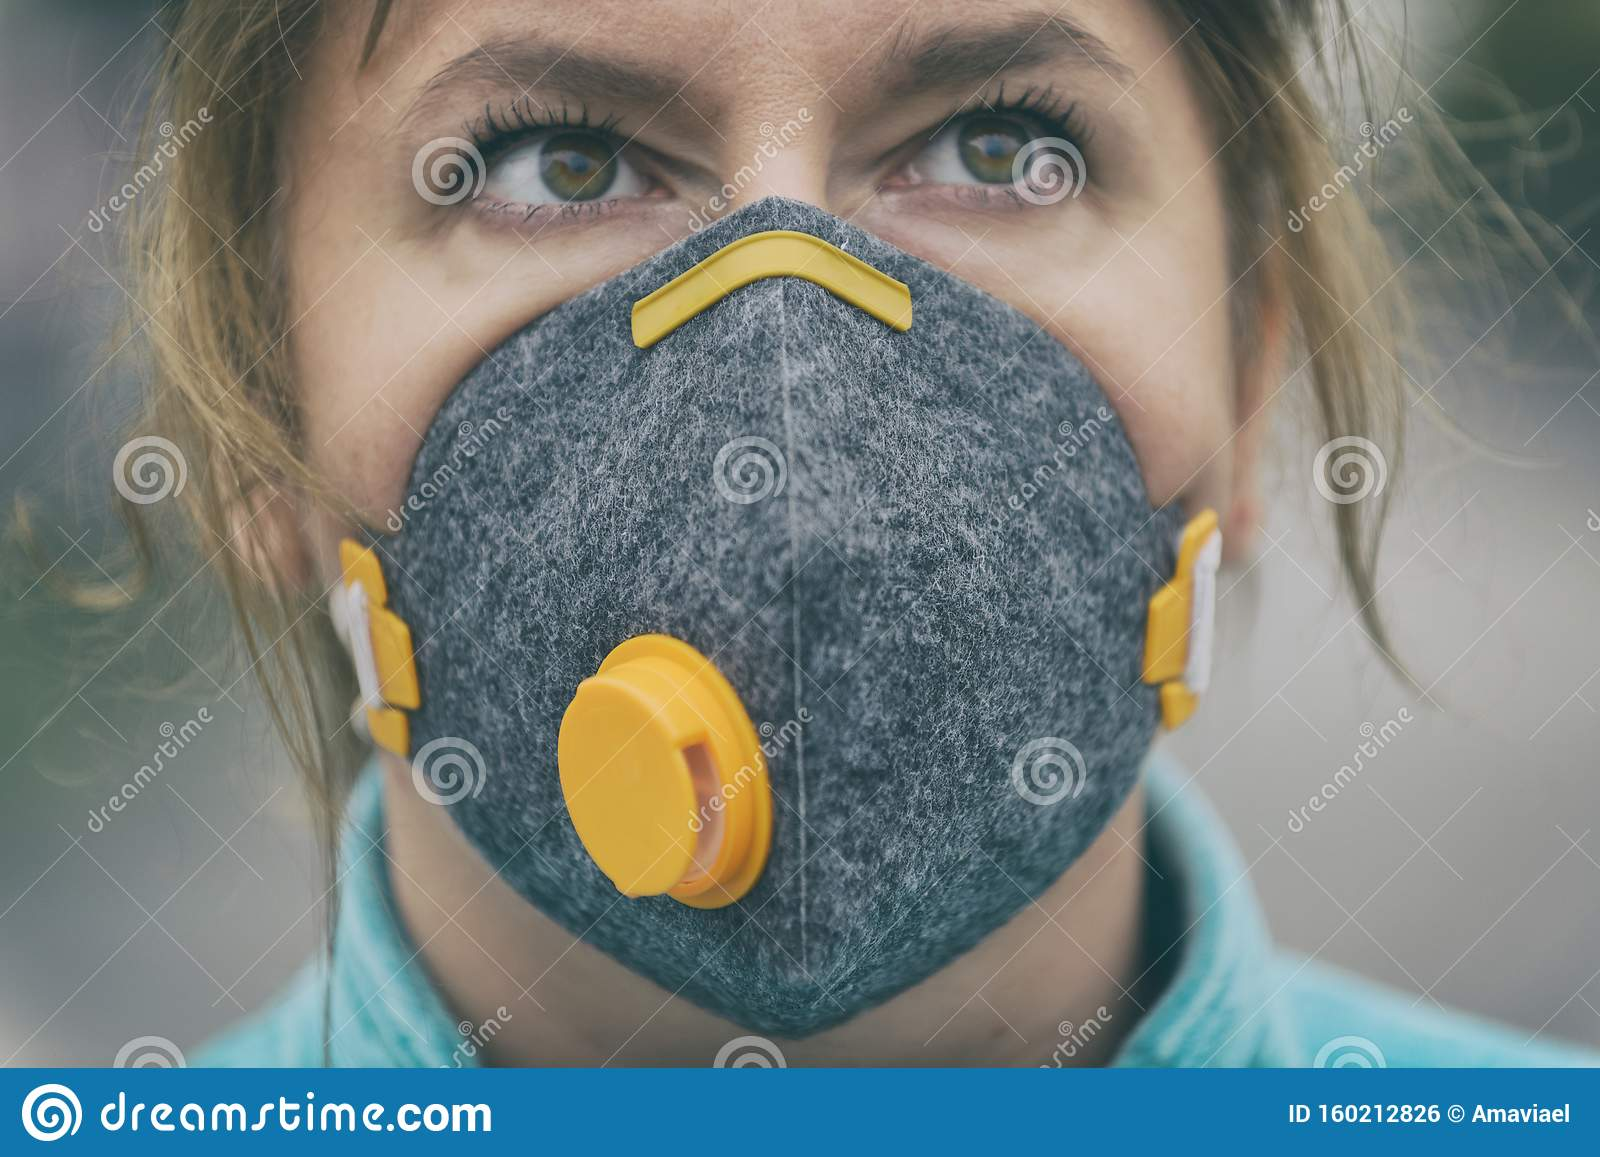 masque anti pollution virus